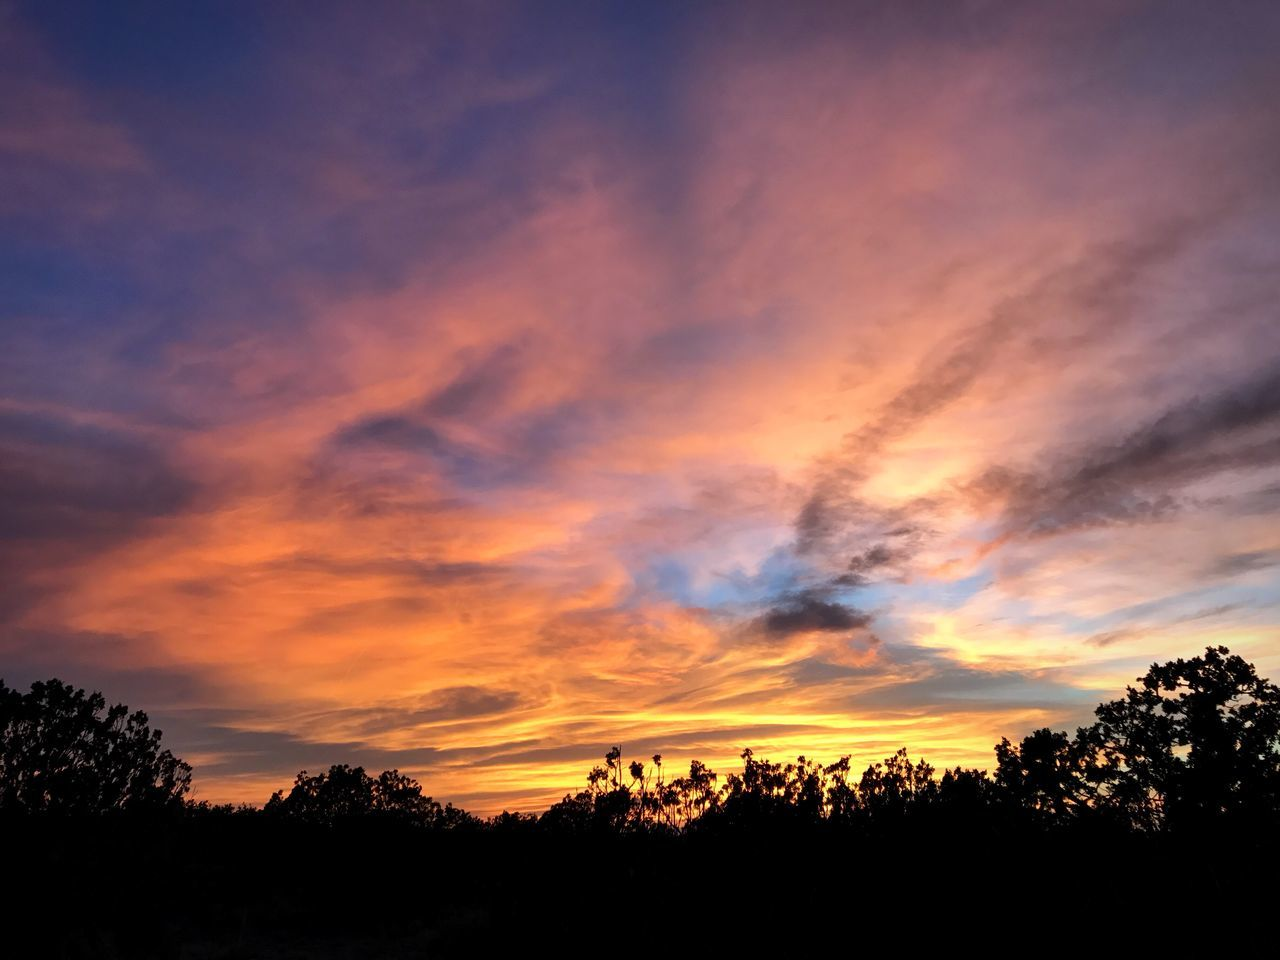 sunset, silhouette, tree, beauty in nature, nature, scenics, tranquil scene, tranquility, sky, orange color, cloud - sky, dramatic sky, no people, outdoors, landscape, day